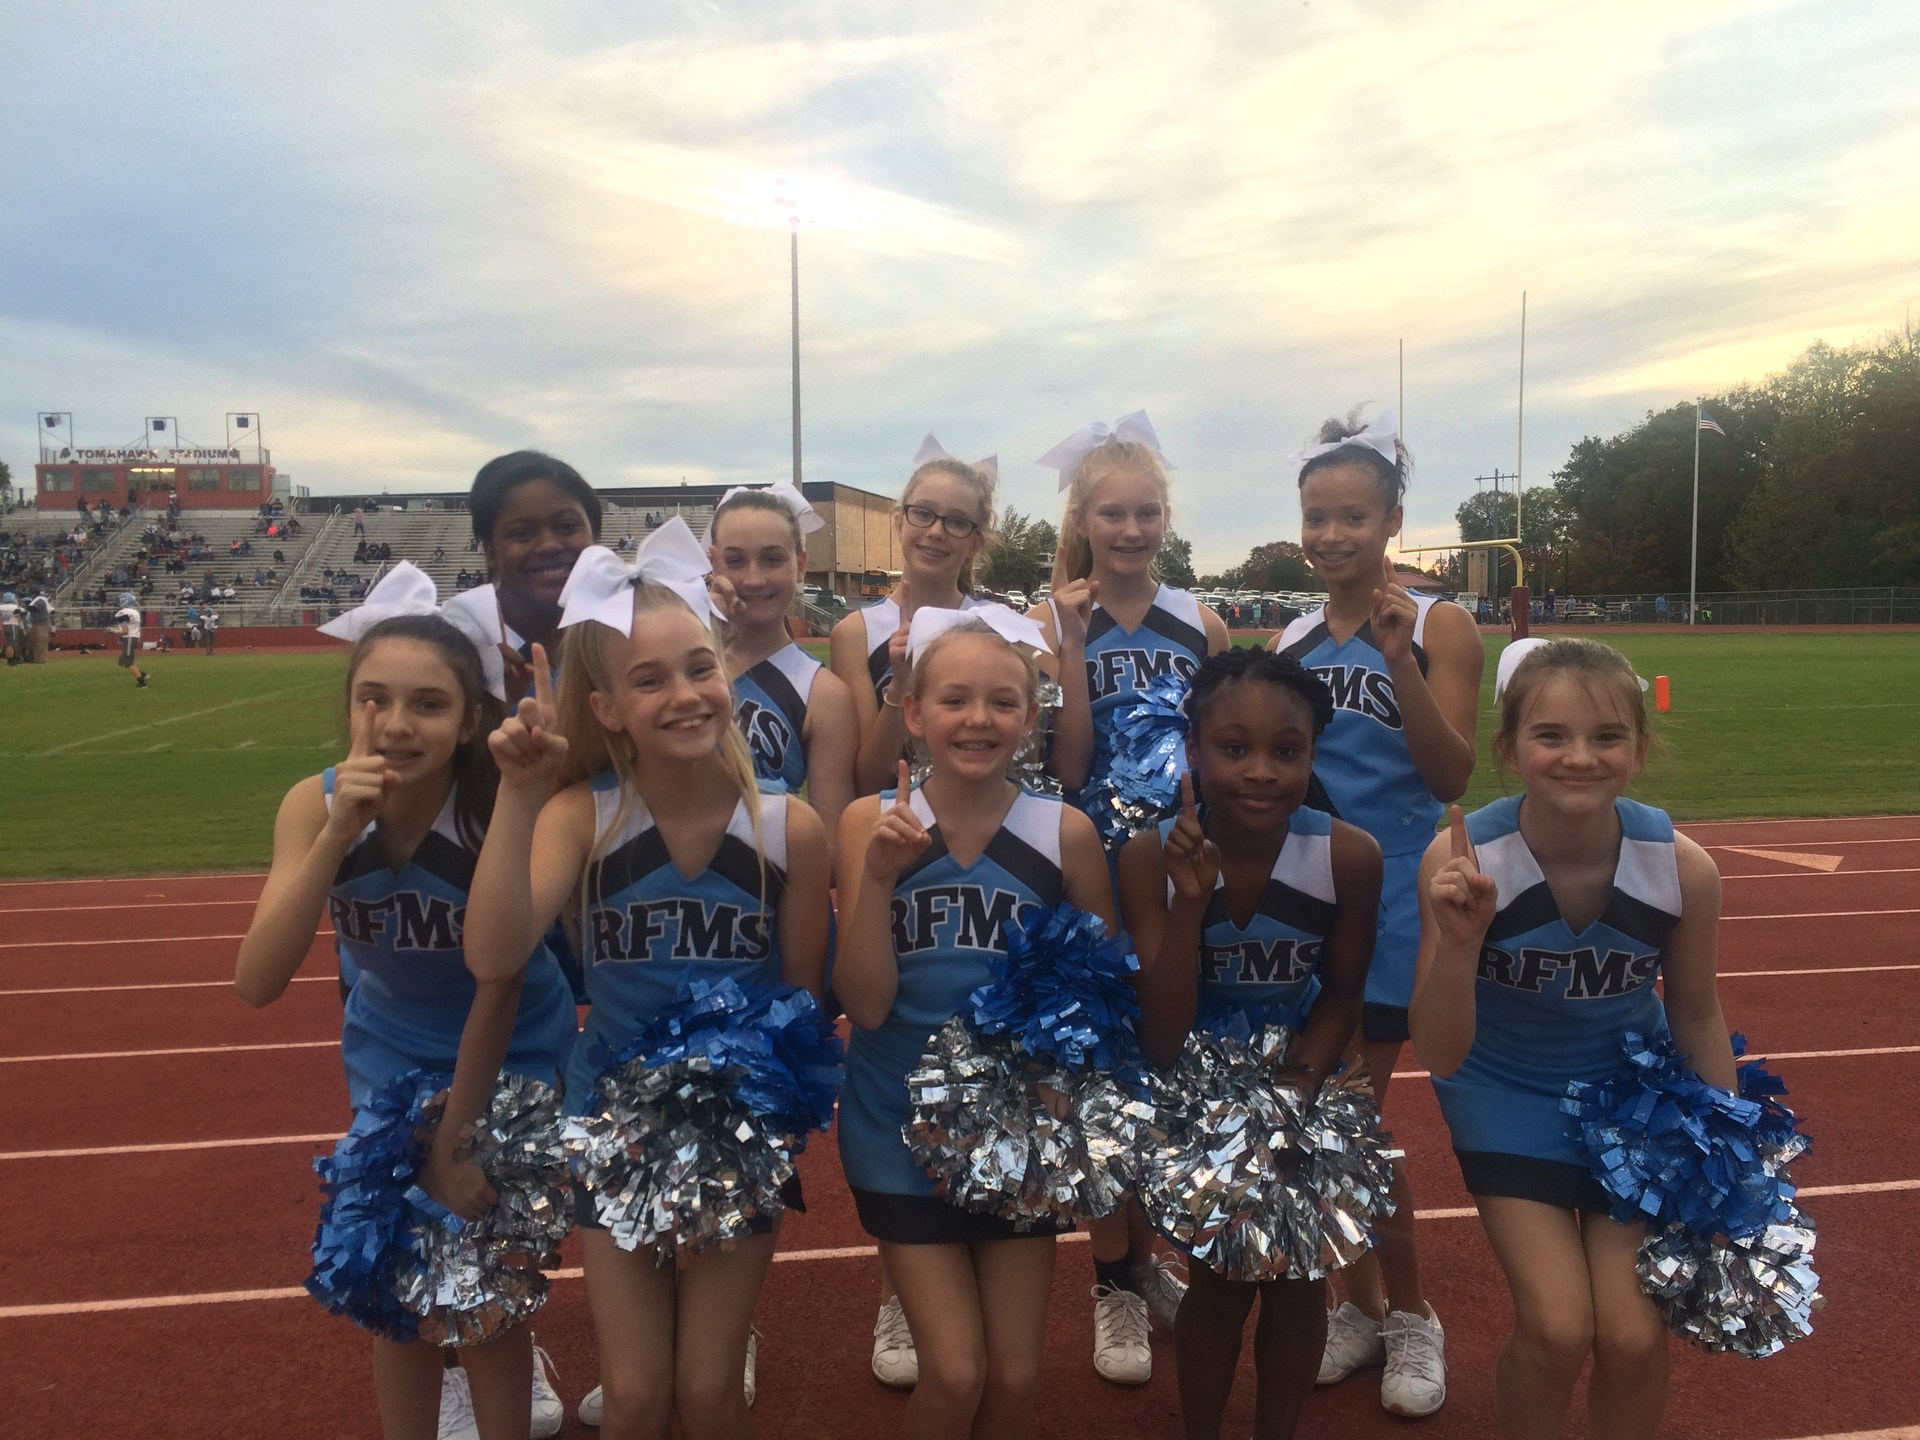 Cheerleaders at RF Championship Game